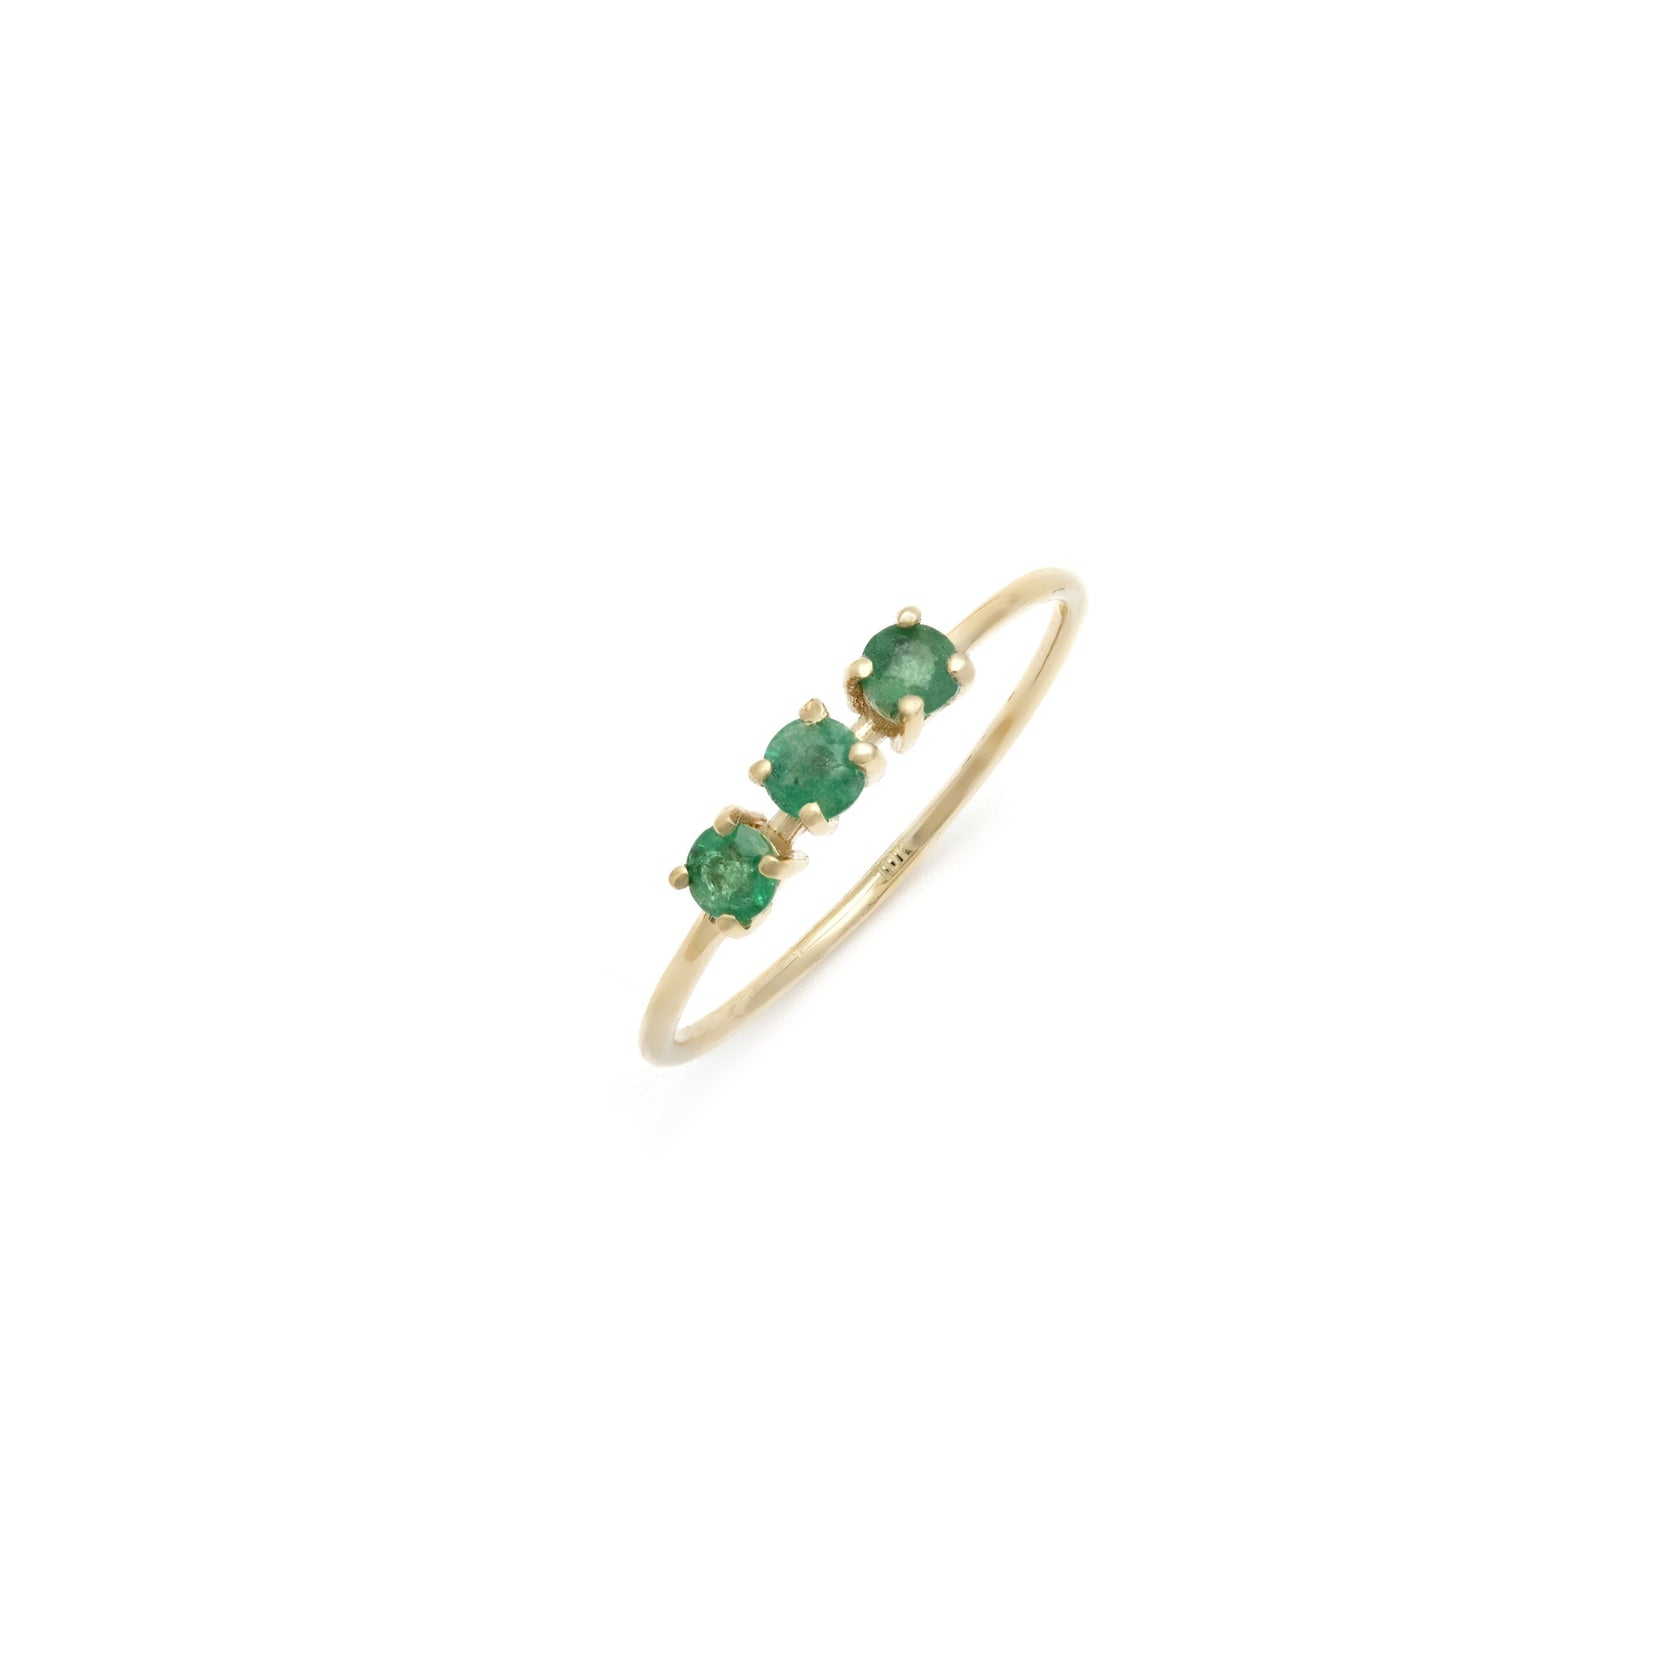 Emerald Trio Ring - 10k Solid Gold